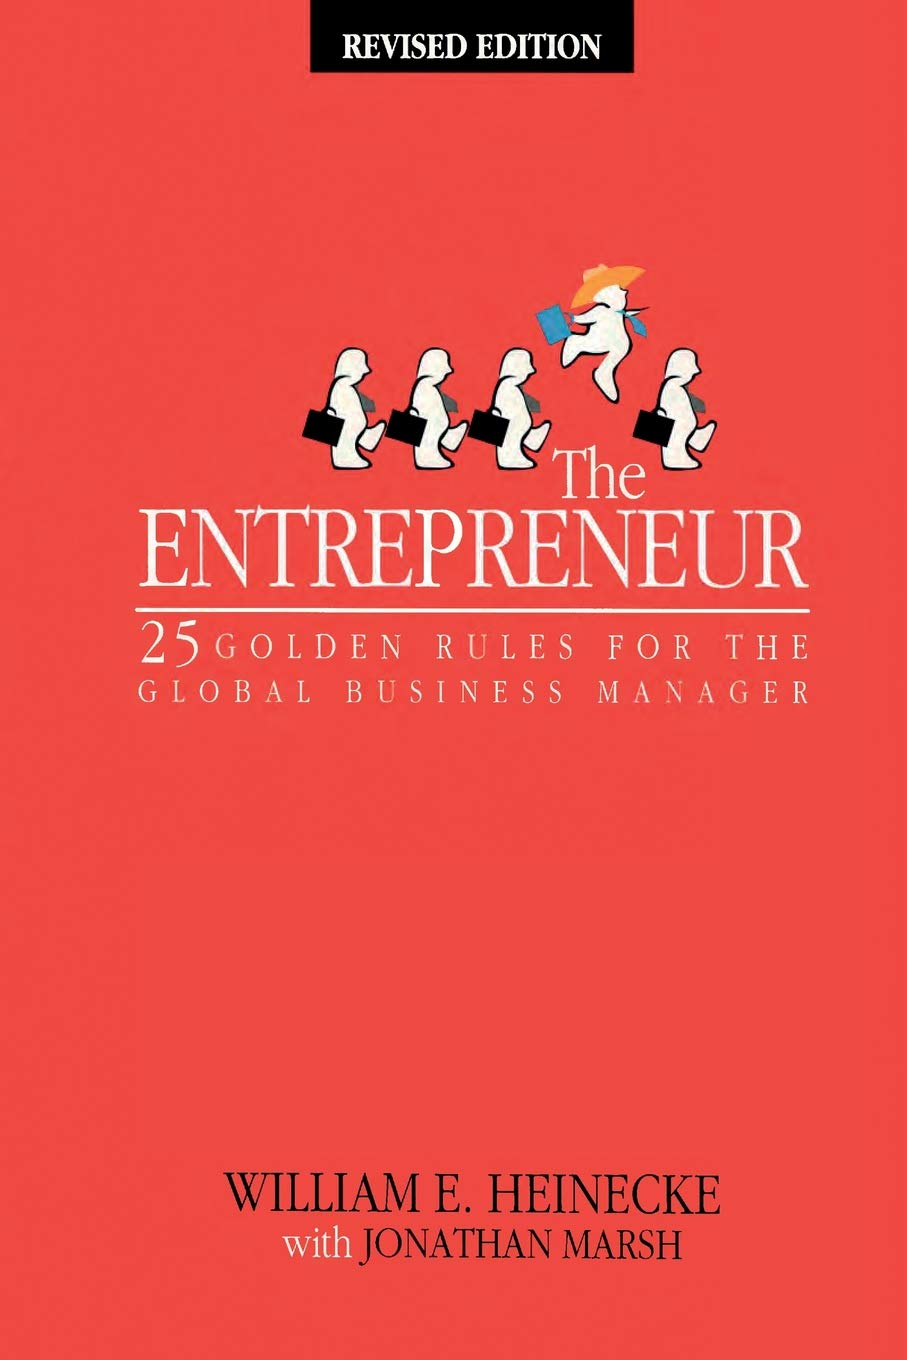 30 Red Hot Businesses To Start For Under $100: Instructions Included! Become a Millionaire